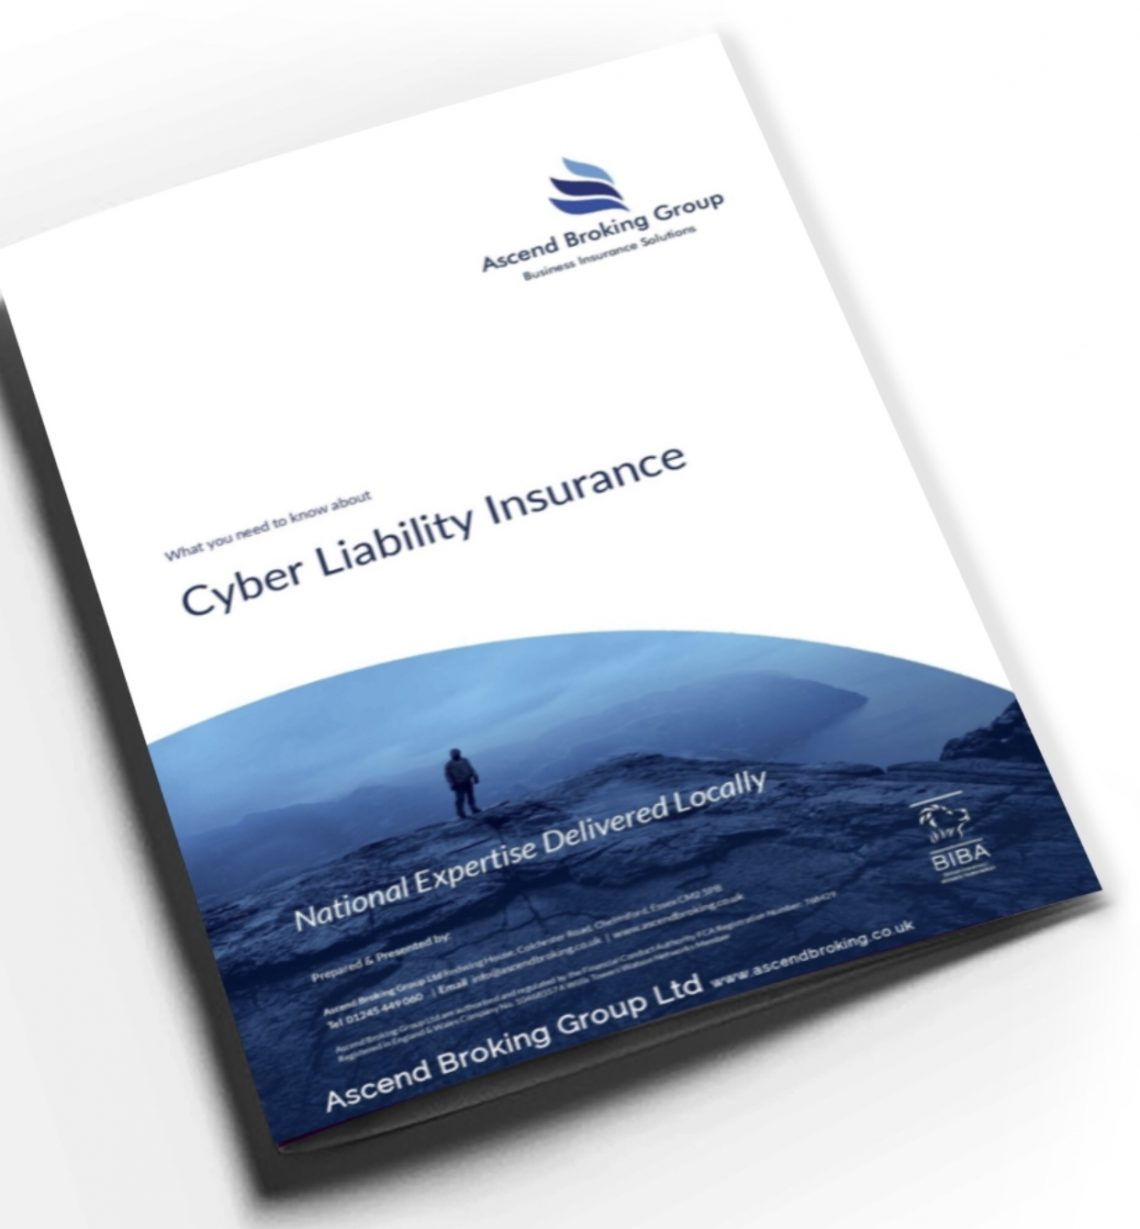 Cyber liability insurance explained our free ebook ascend cyber liability insurance explained our free ebook reheart Choice Image